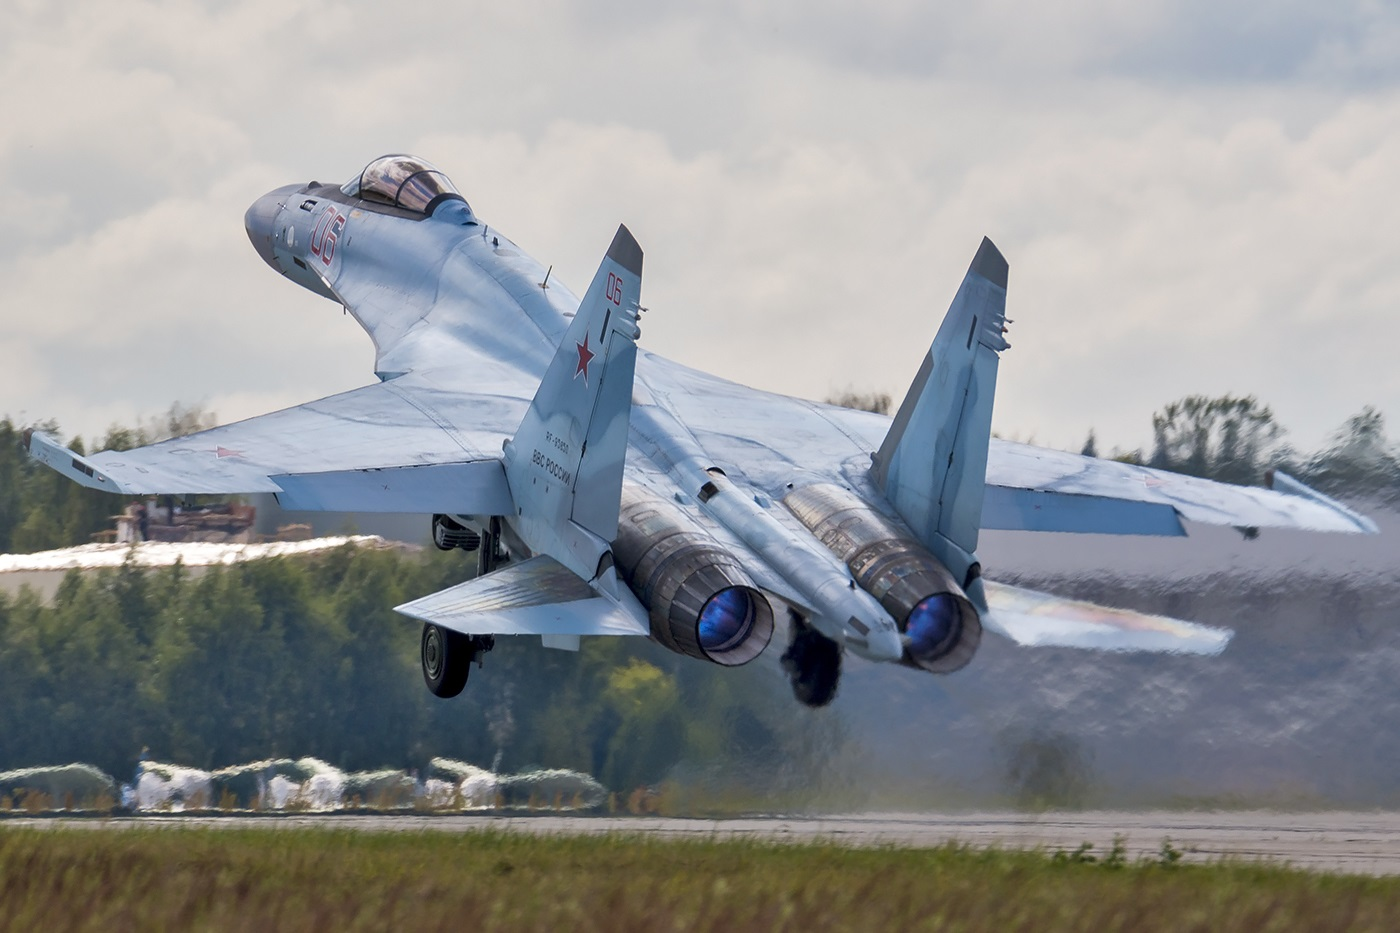 This Video Says It All: Russia's Su-35 Fighter Might Be Too Successful for Its Own Good